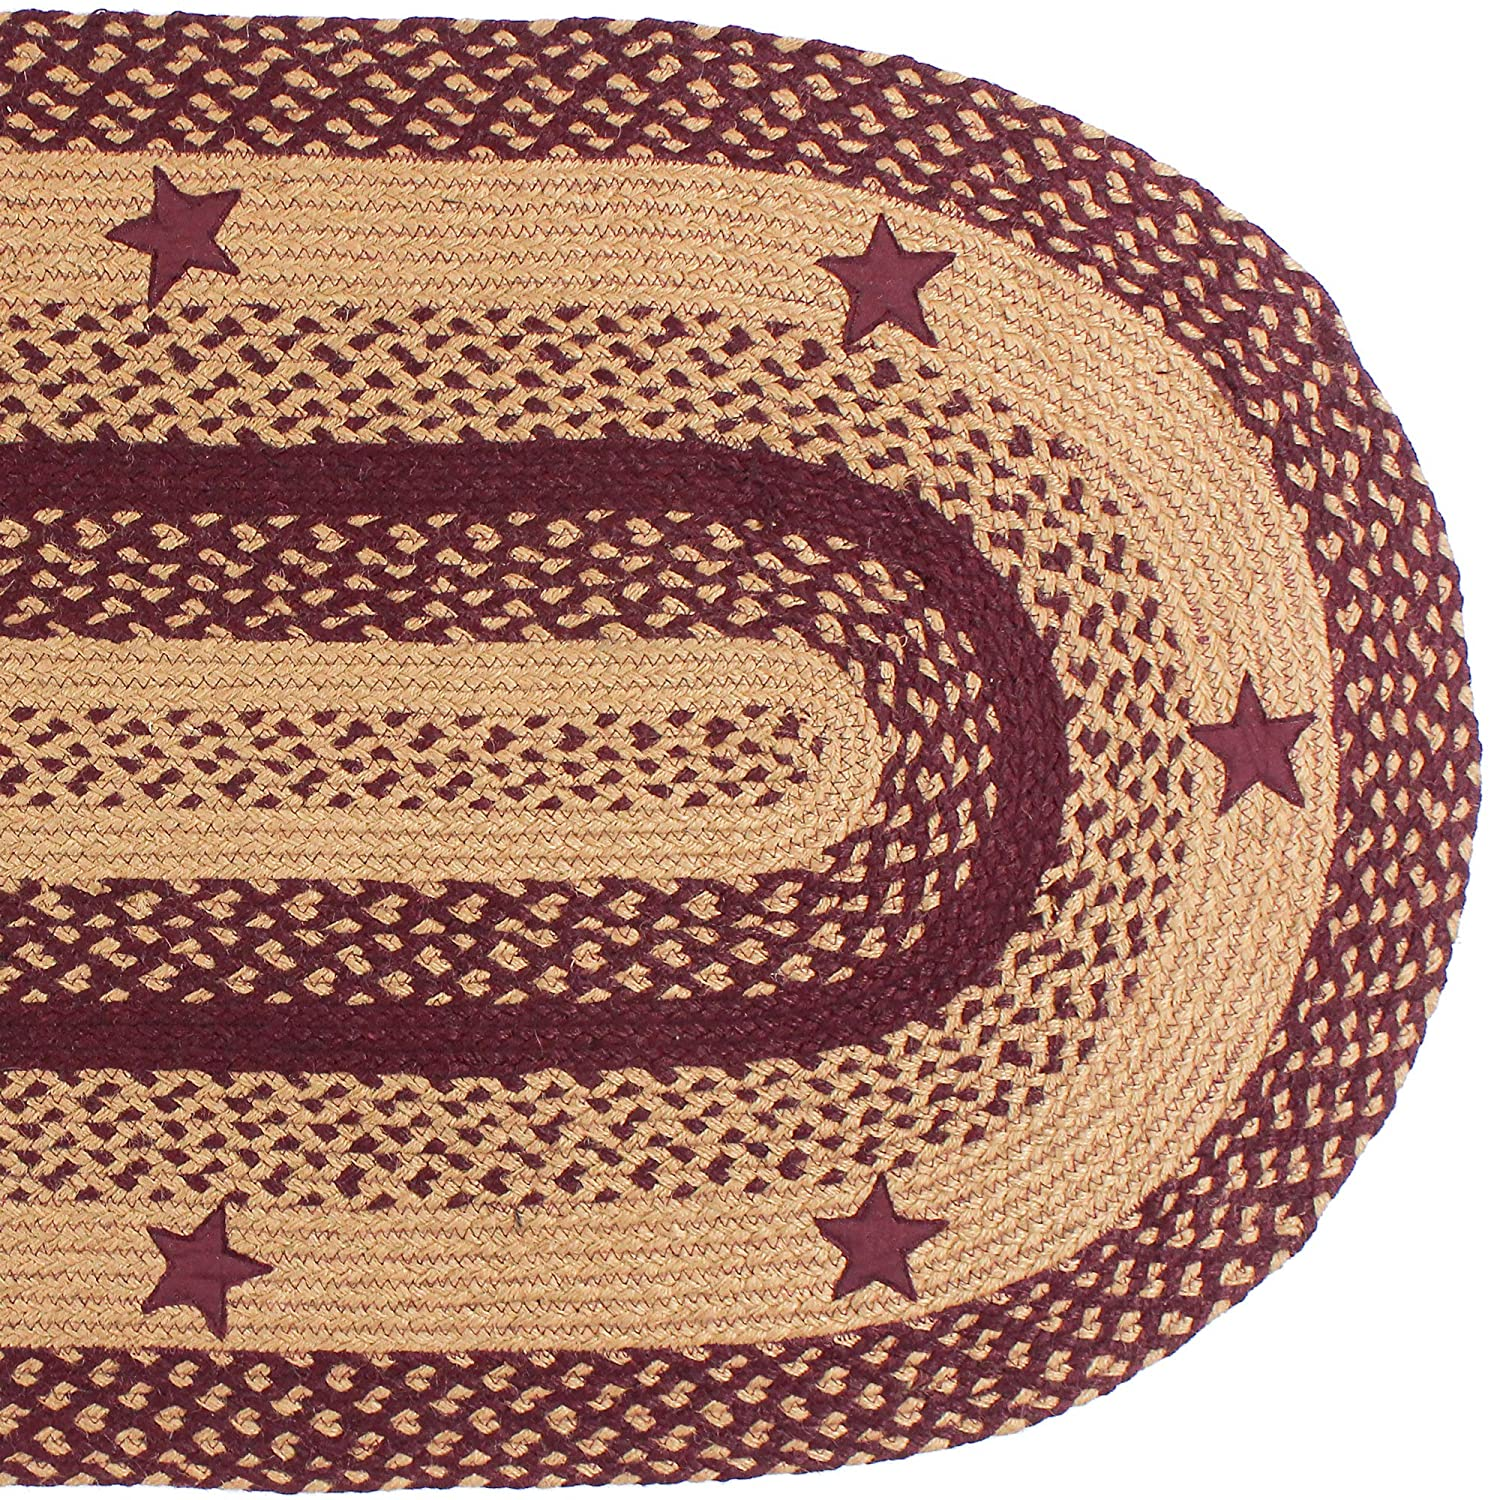 ihf home decor oval floor carpet braided rug 20 x 30